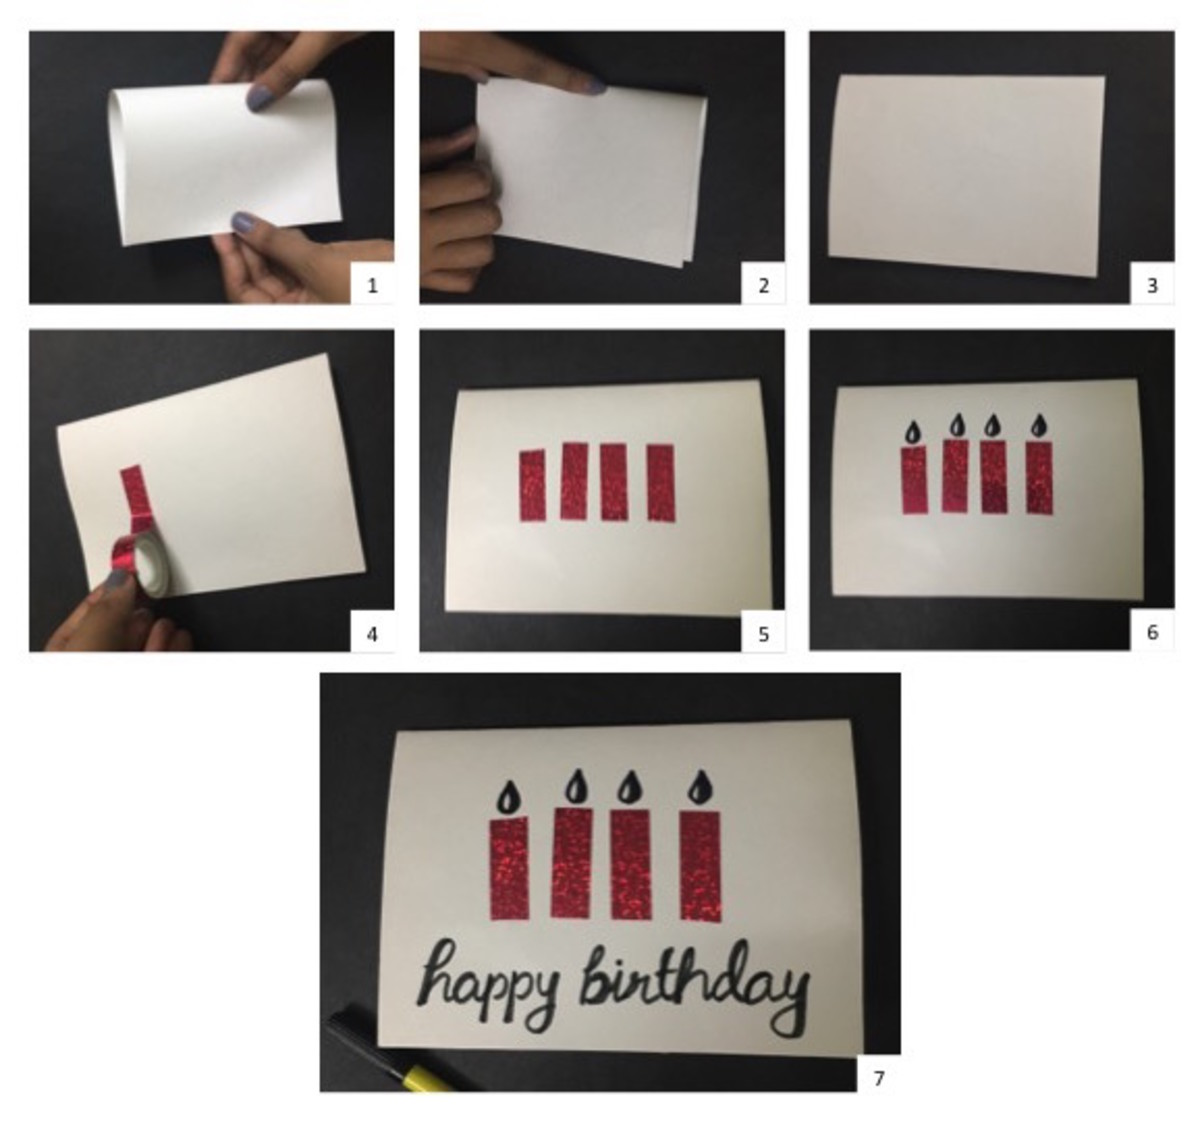 Instructions for Birthday Candles Greeting Card